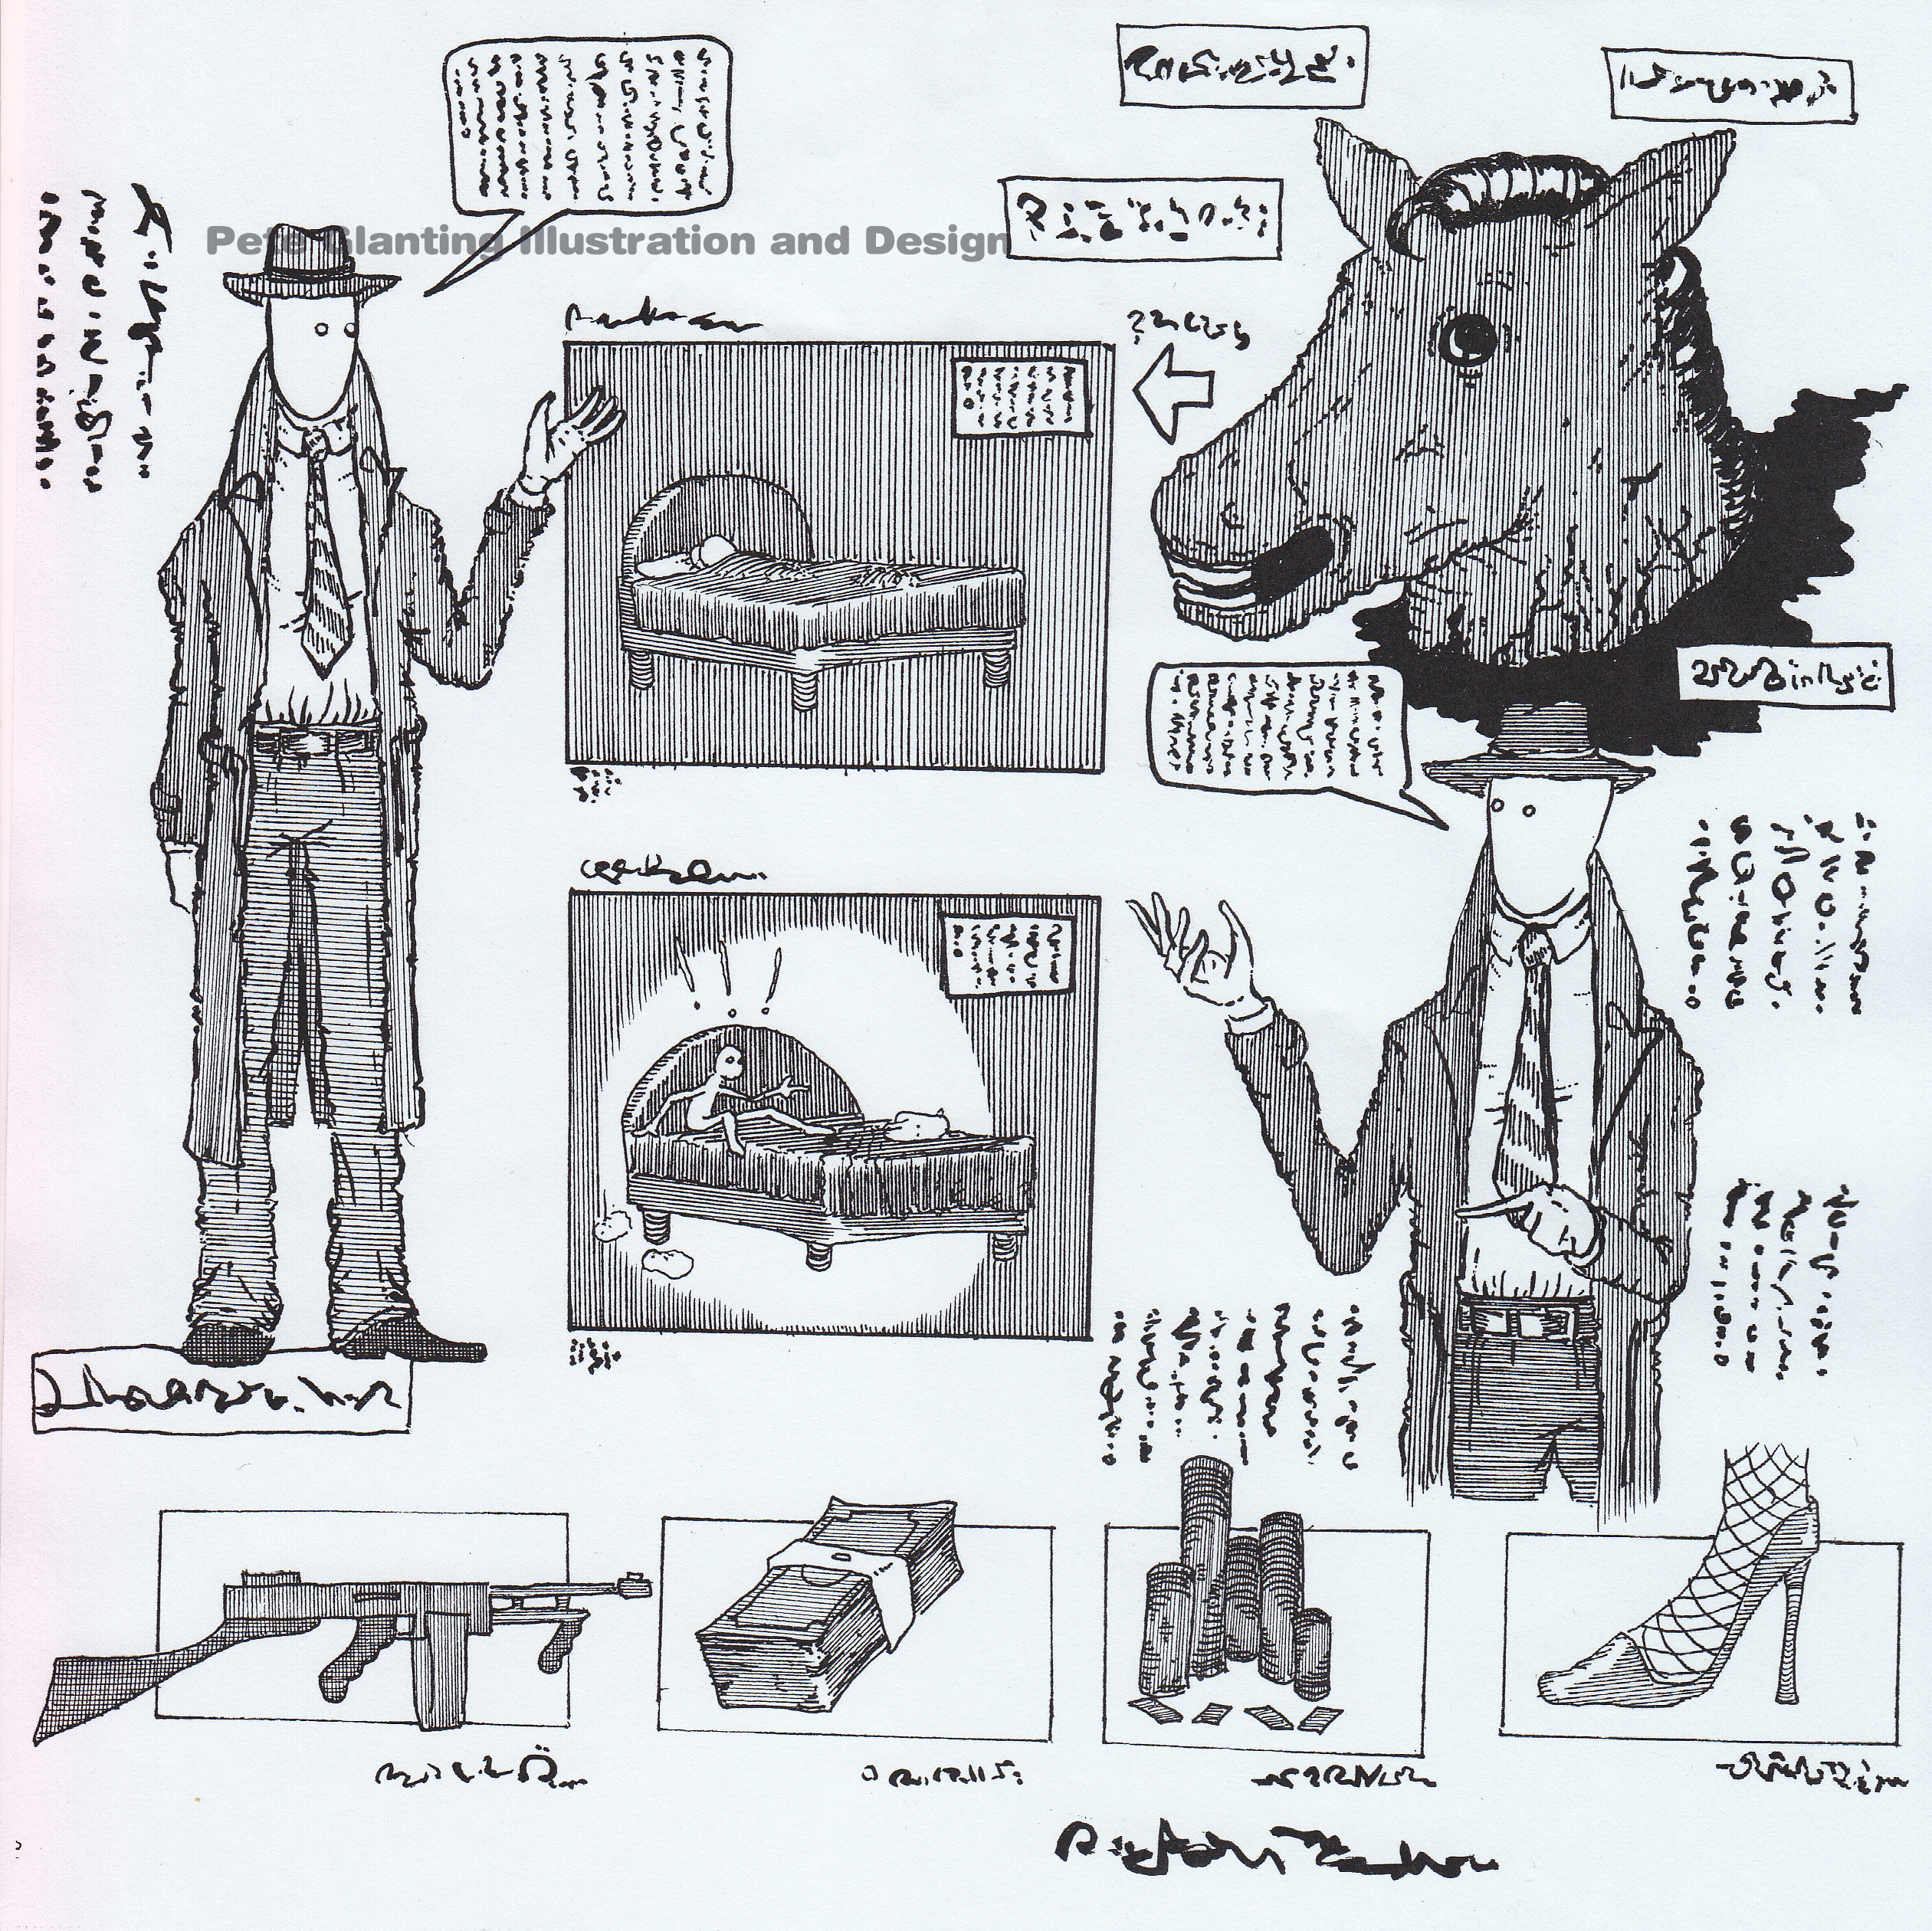 Mobster diagram peteglantingdraws advertisements ccuart Image collections